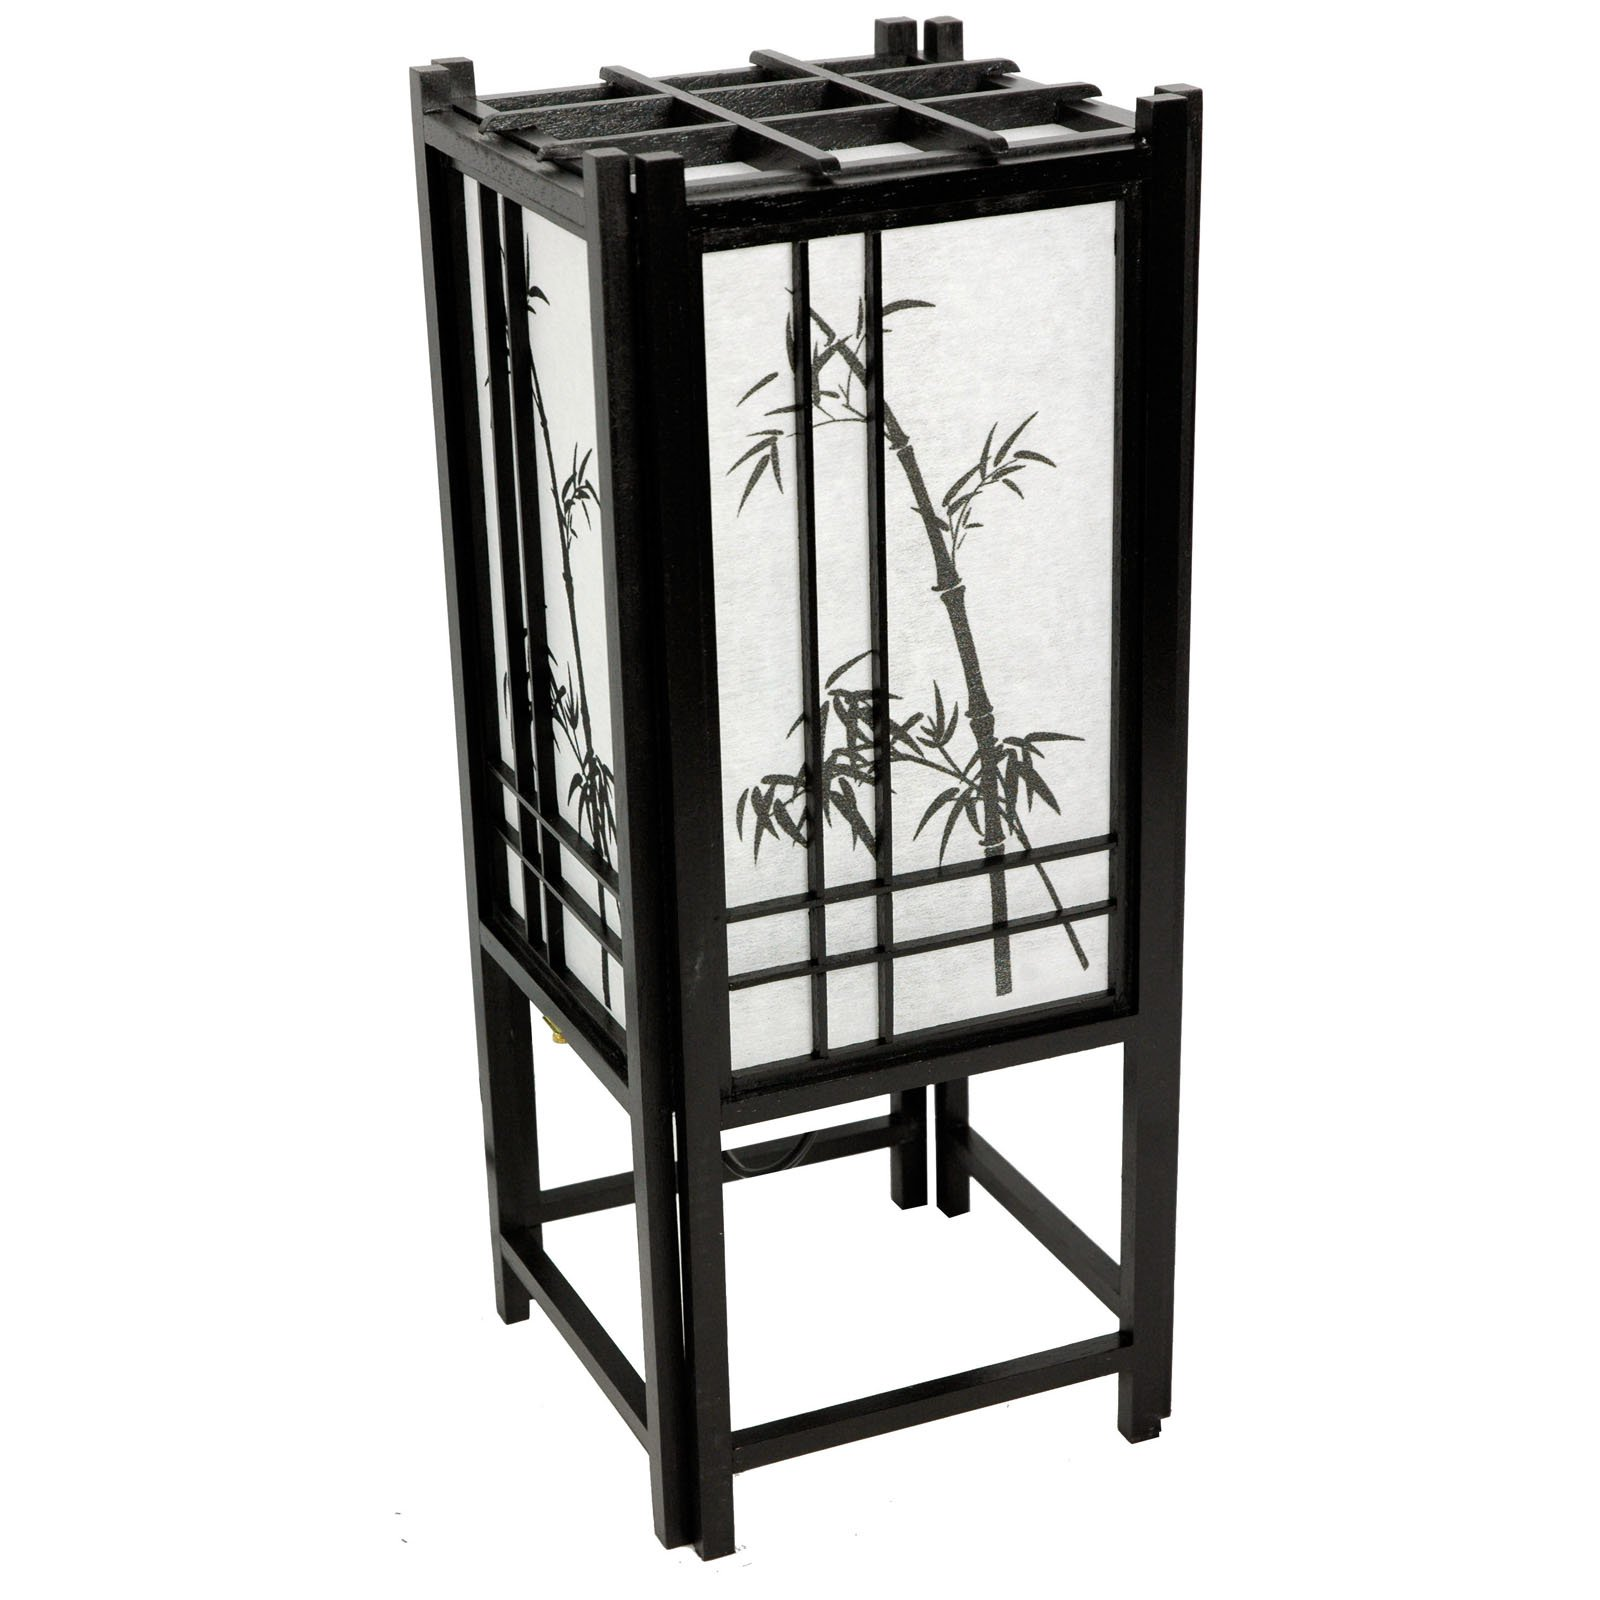 Oriental Furniture Bamboo Tree Lamp 18 Inch - Black